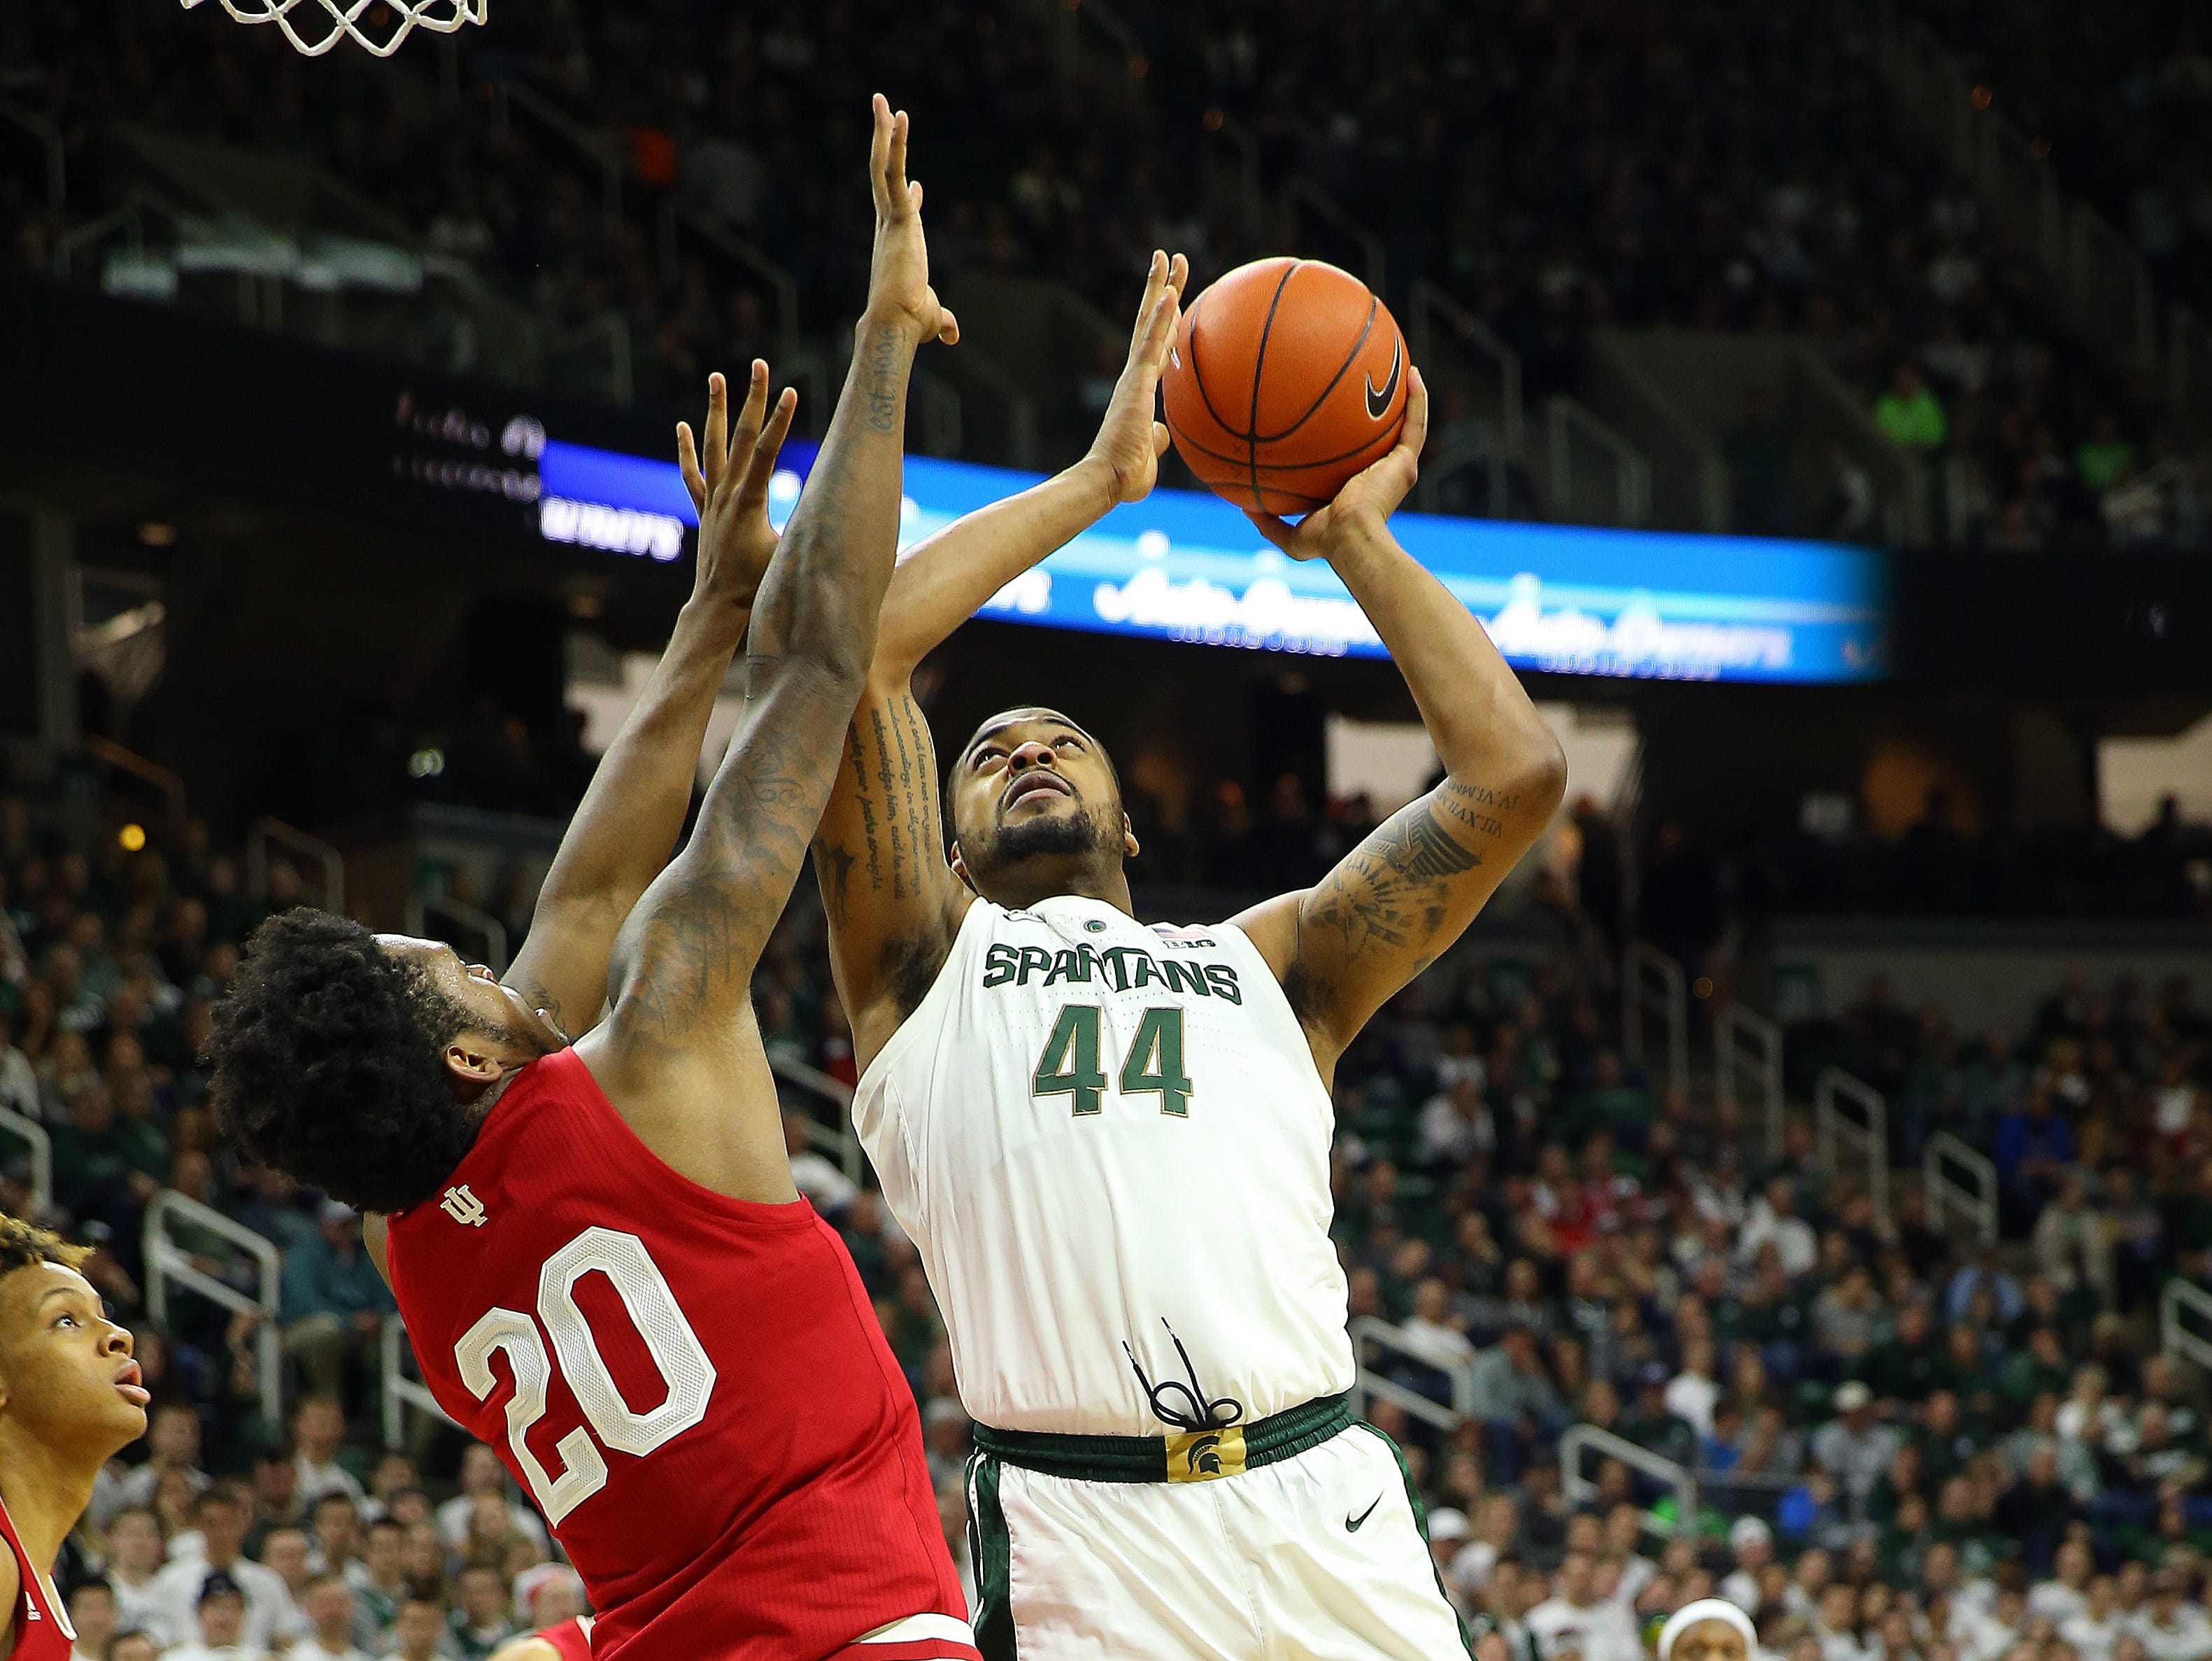 Feb 2, 2019; East Lansing, MI, USA; Michigan State Spartans forward Nick Ward (44) is defended by Indiana Hoosiers forward De'Ron Davis (20) during the first half of a game at the Breslin Center. Mandatory Credit: Mike Carter-USA TODAY Sports